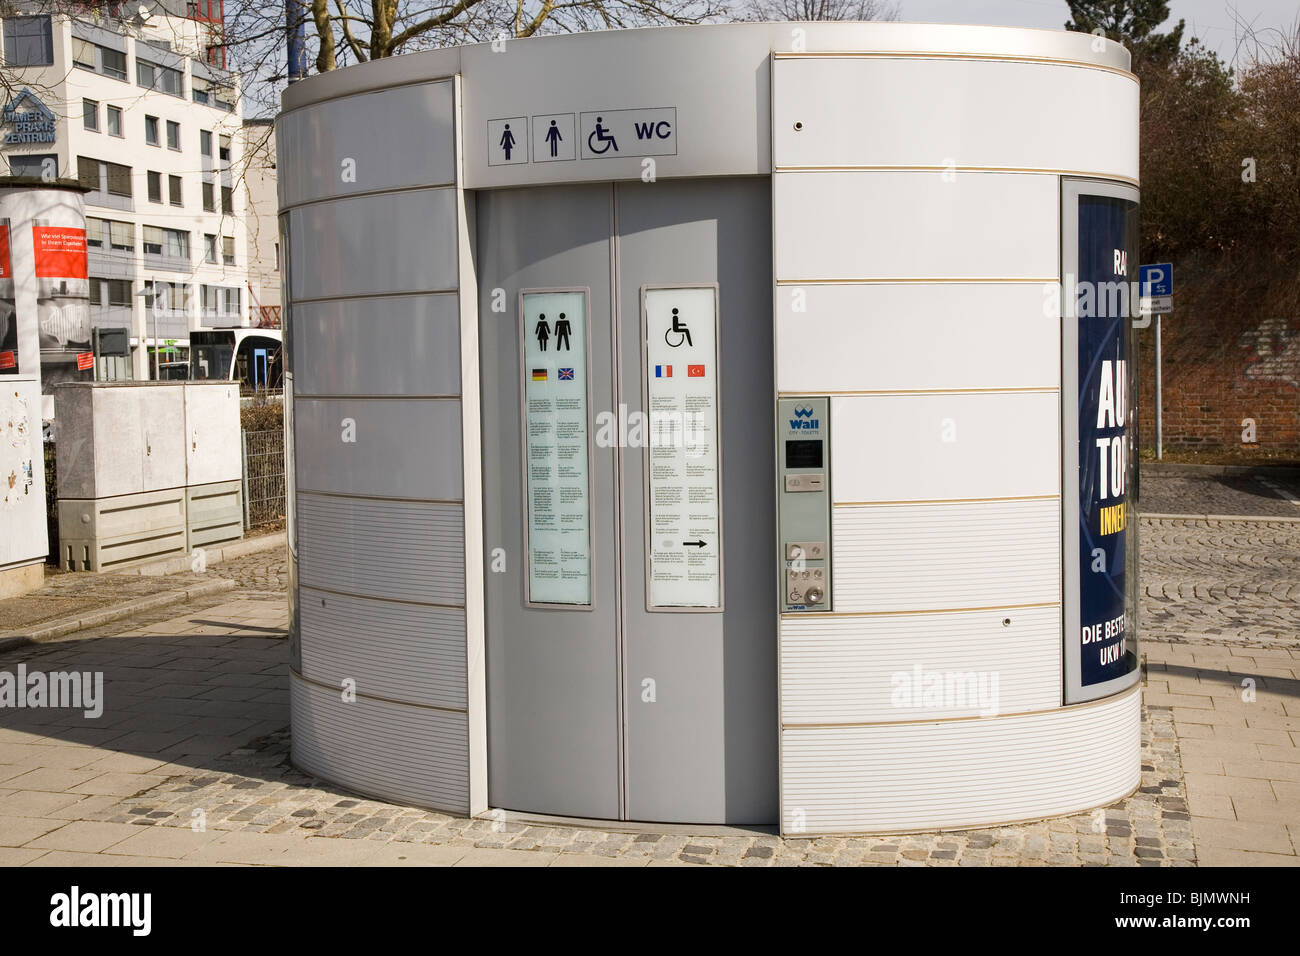 A modern pay-per-use public toilet (City Toilette) stands in the historic city of Ulm, Germany. - Stock Image